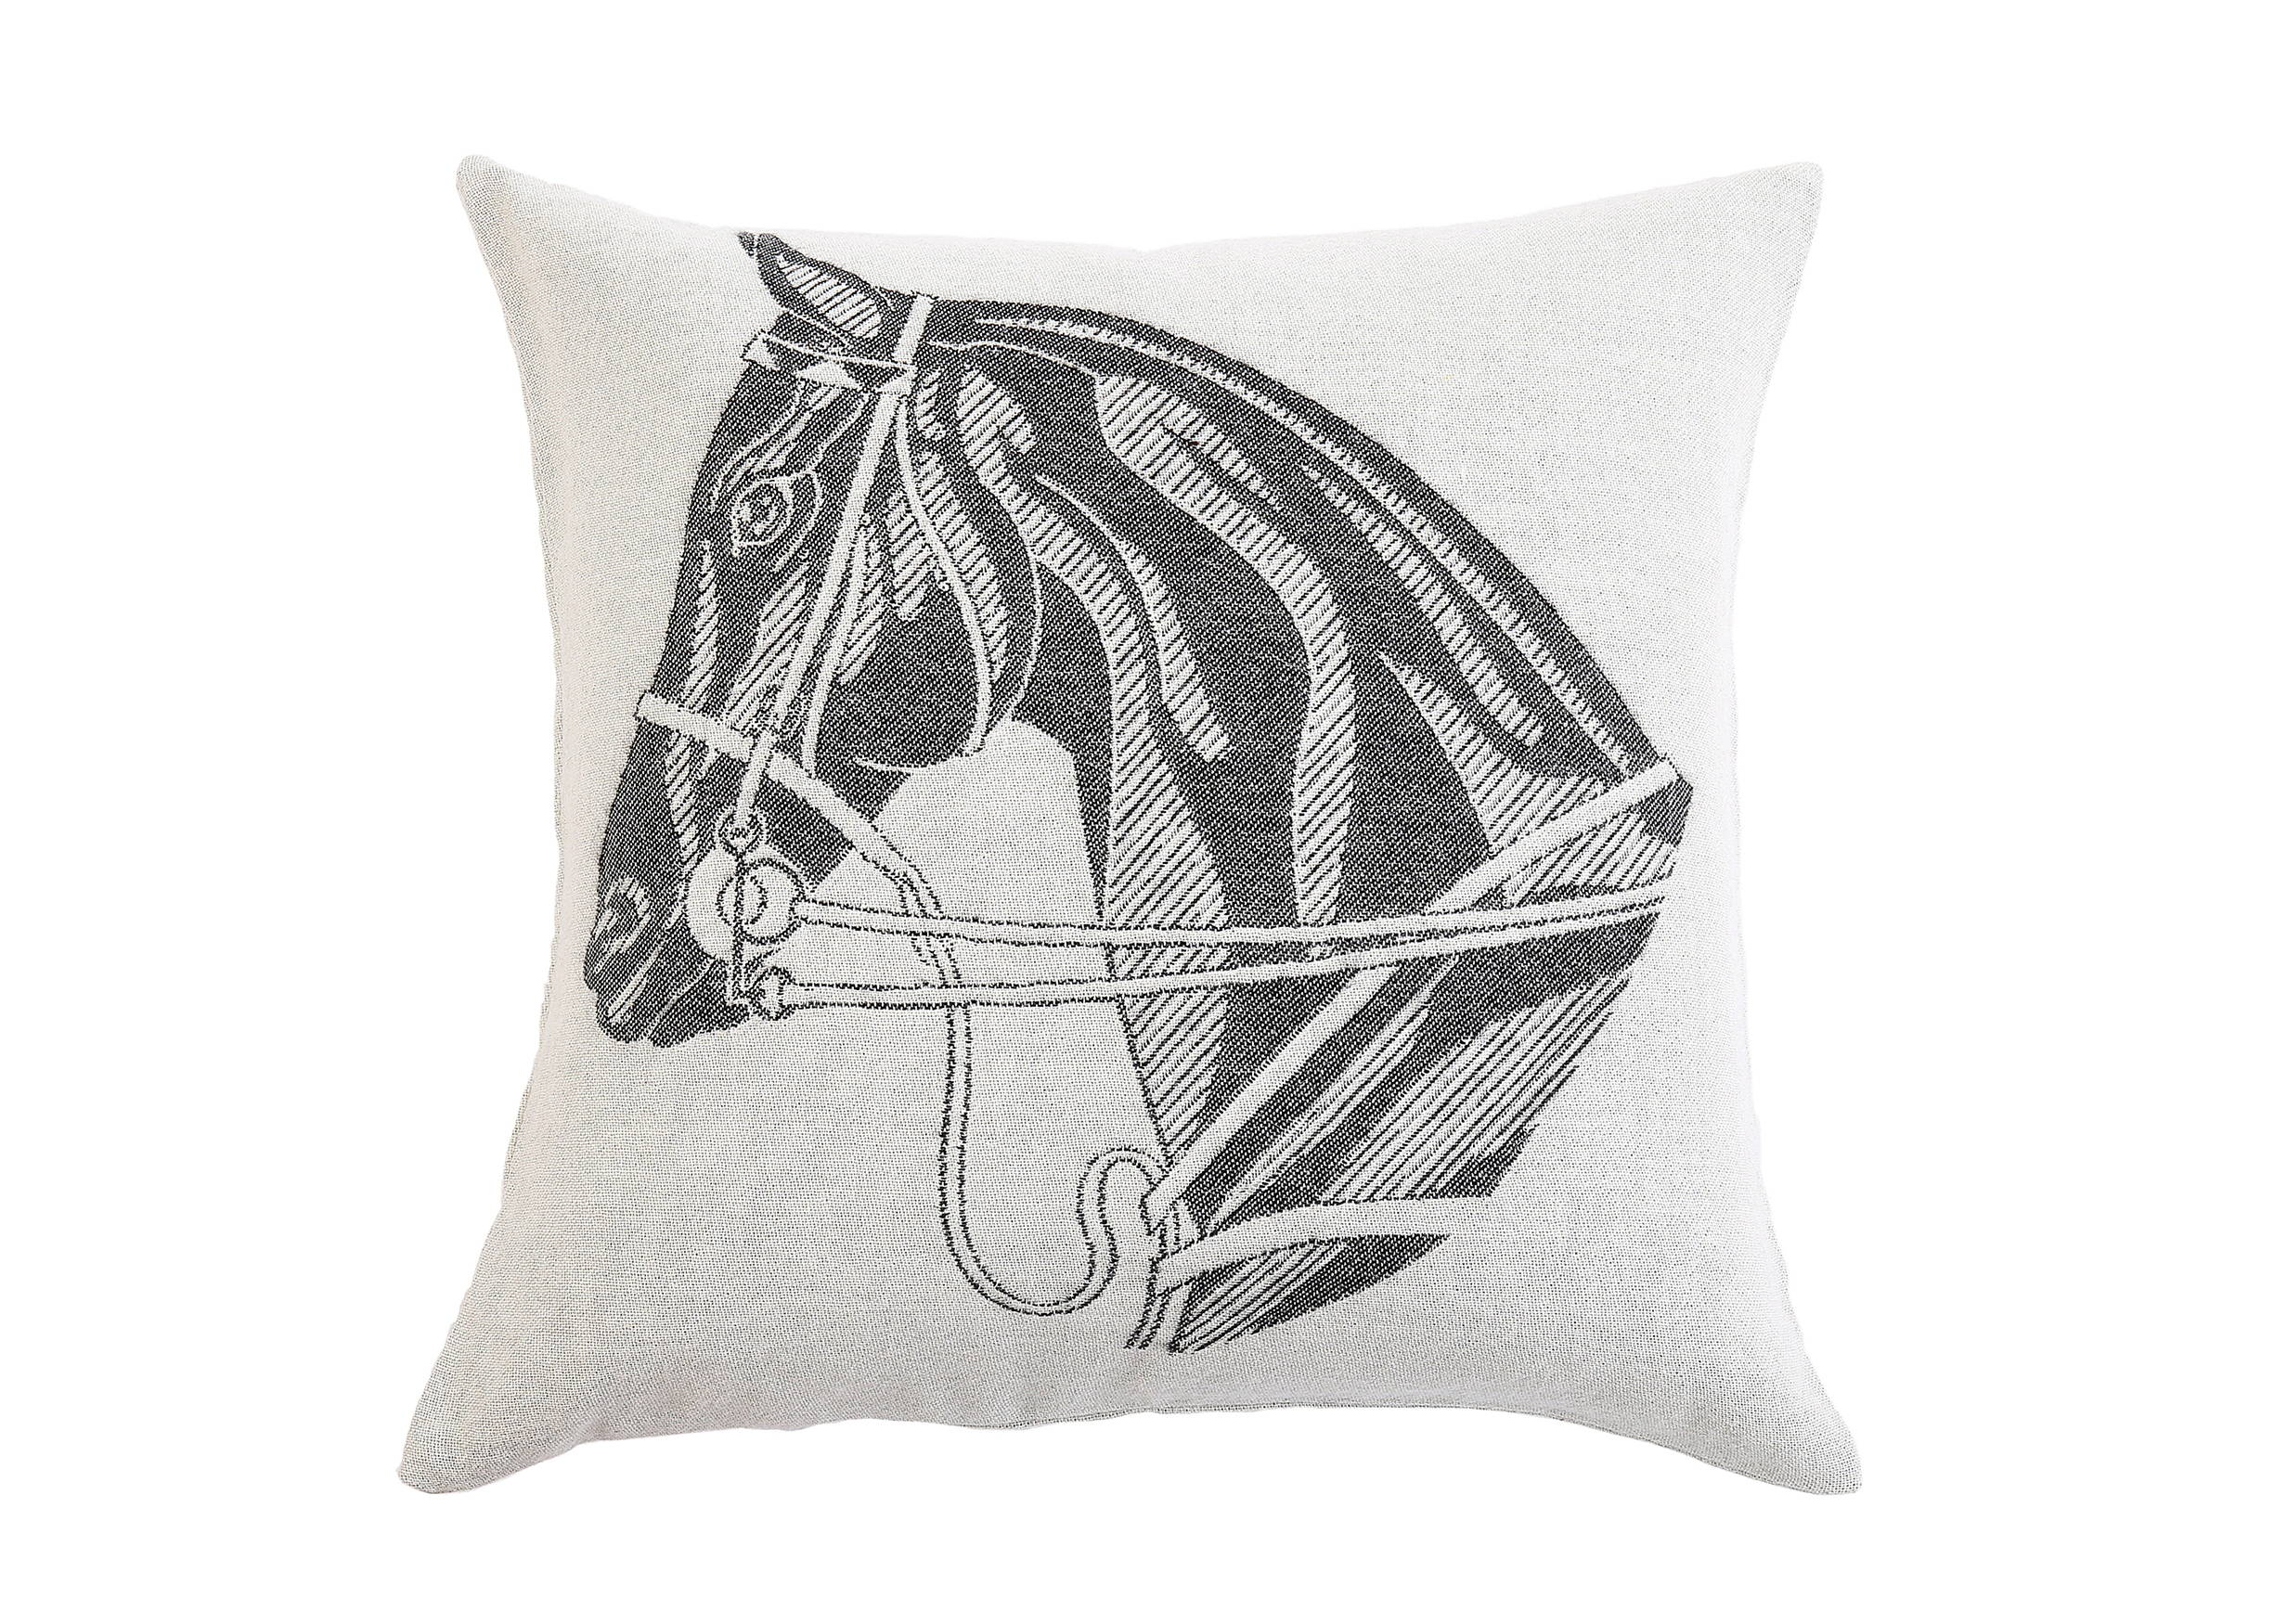 equestrian-inspired Alpaca Horse Head Pillow in Charcoal - Stick & Ball